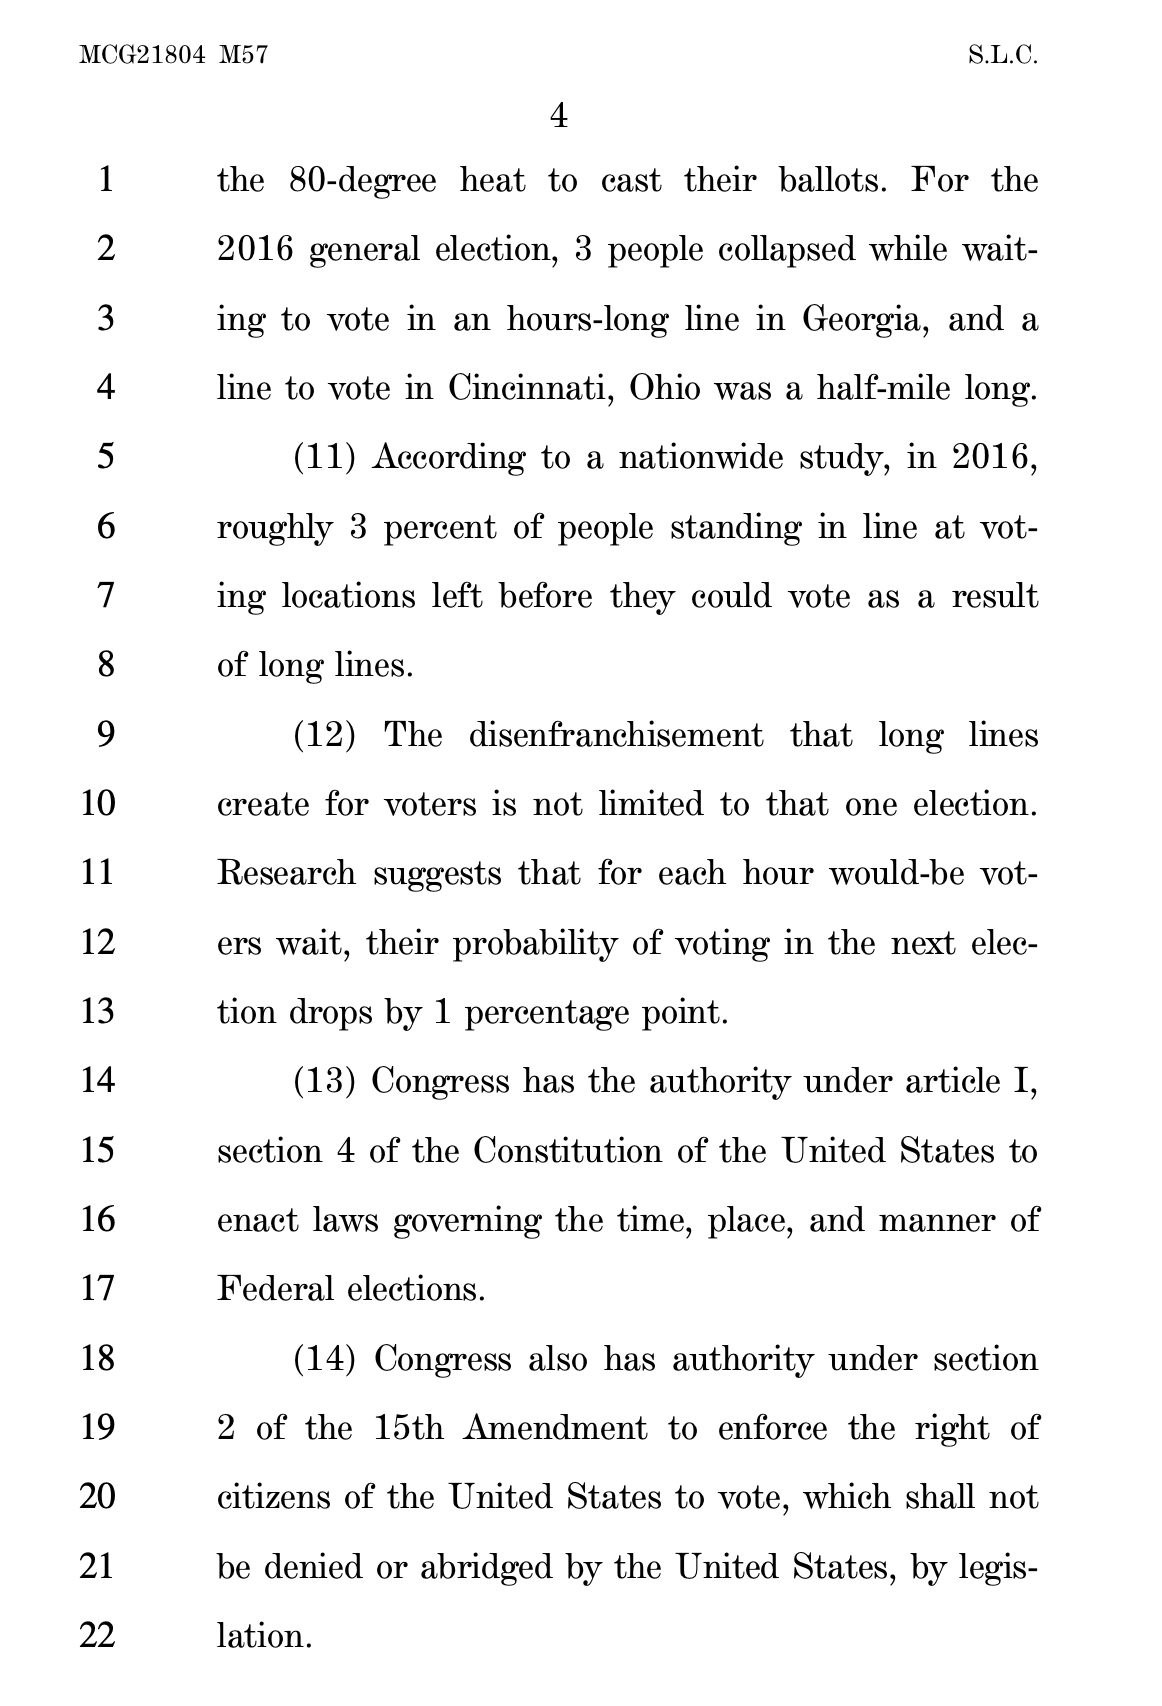 Screen-Shot-2021-06-17-at-4.02.44-PM Democrats Introduces Law To Guarantee Vote Within 30 Minutes Corruption Crime Featured Politics Top Stories